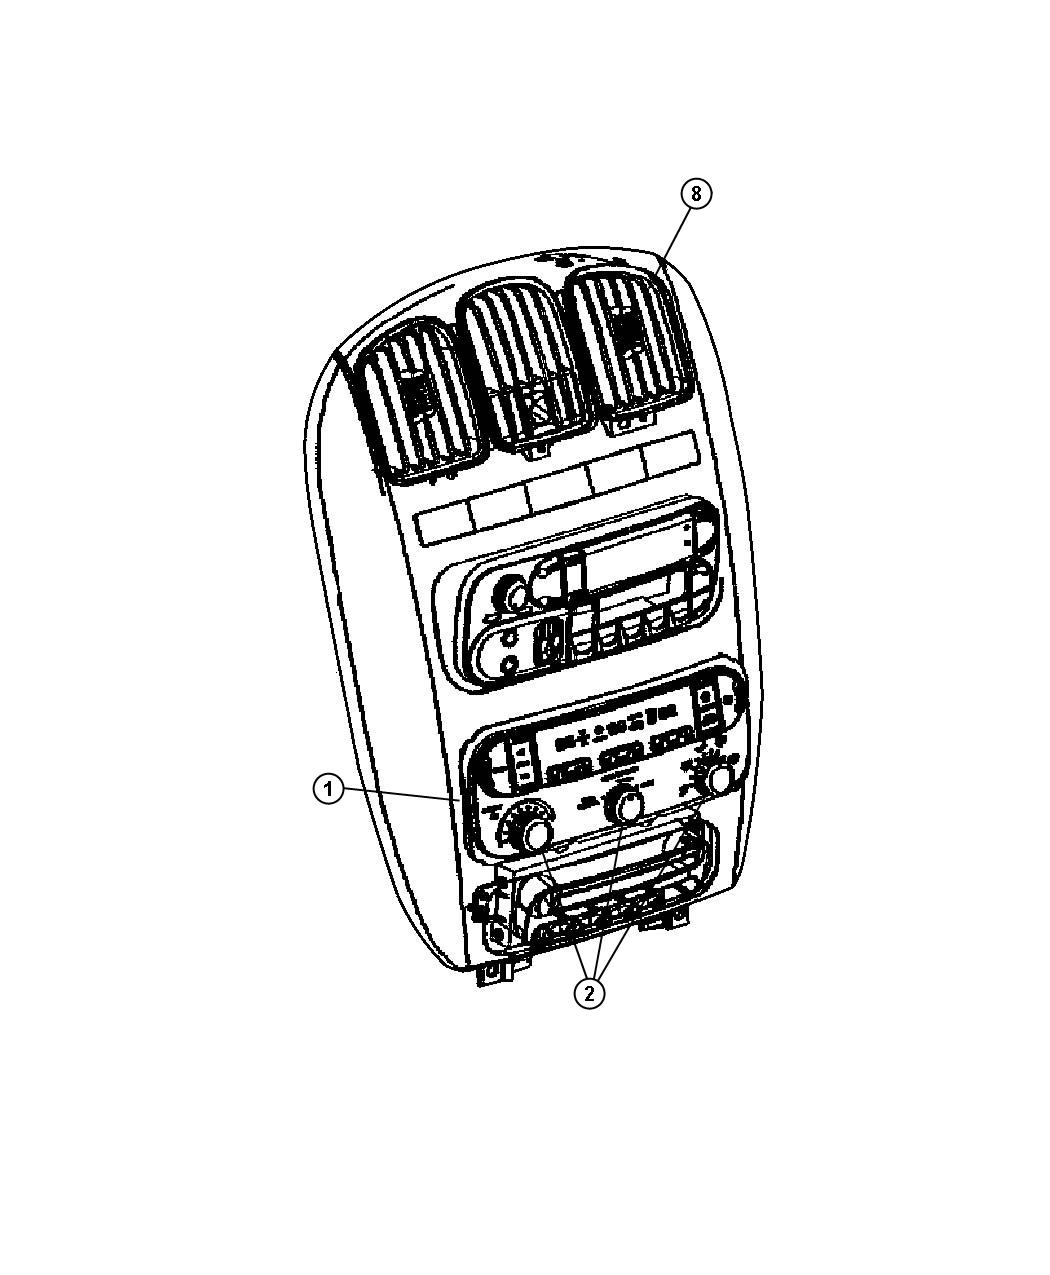 2004 Chrysler Town & Country Control. Used for: a/c and